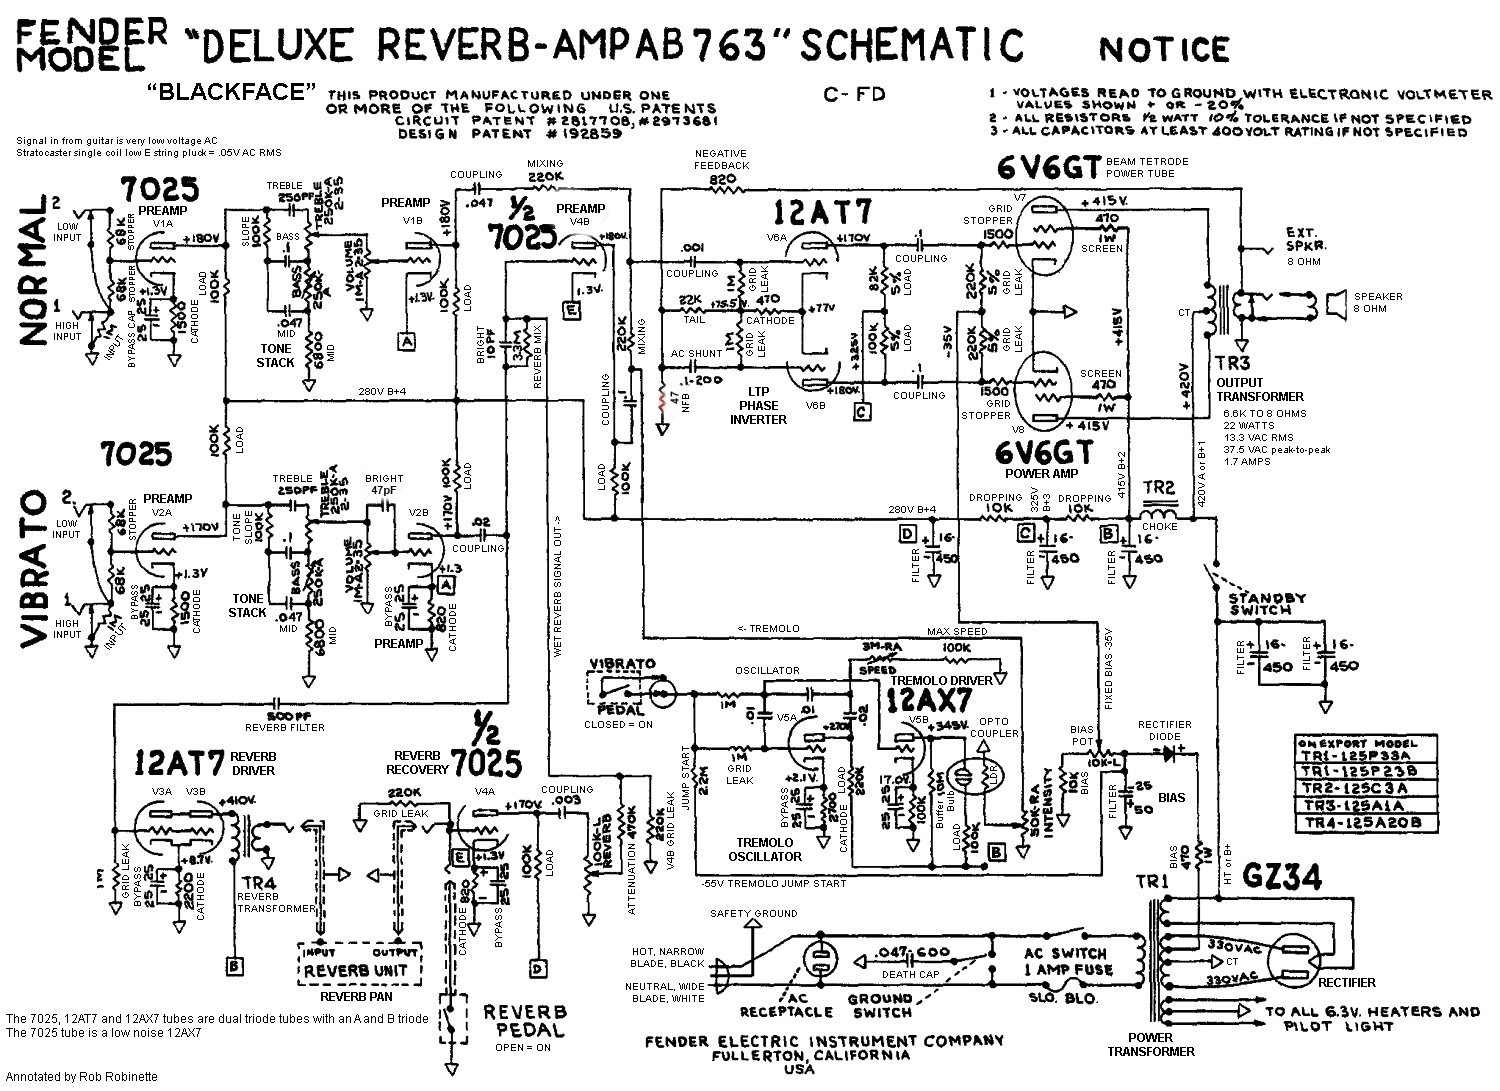 Reading Schematics Electronic Circuits Notice The Reverb Circuit At Lower Left And Tremolo Center Every Component Function Is Listed On This Schematic Click Image For Full